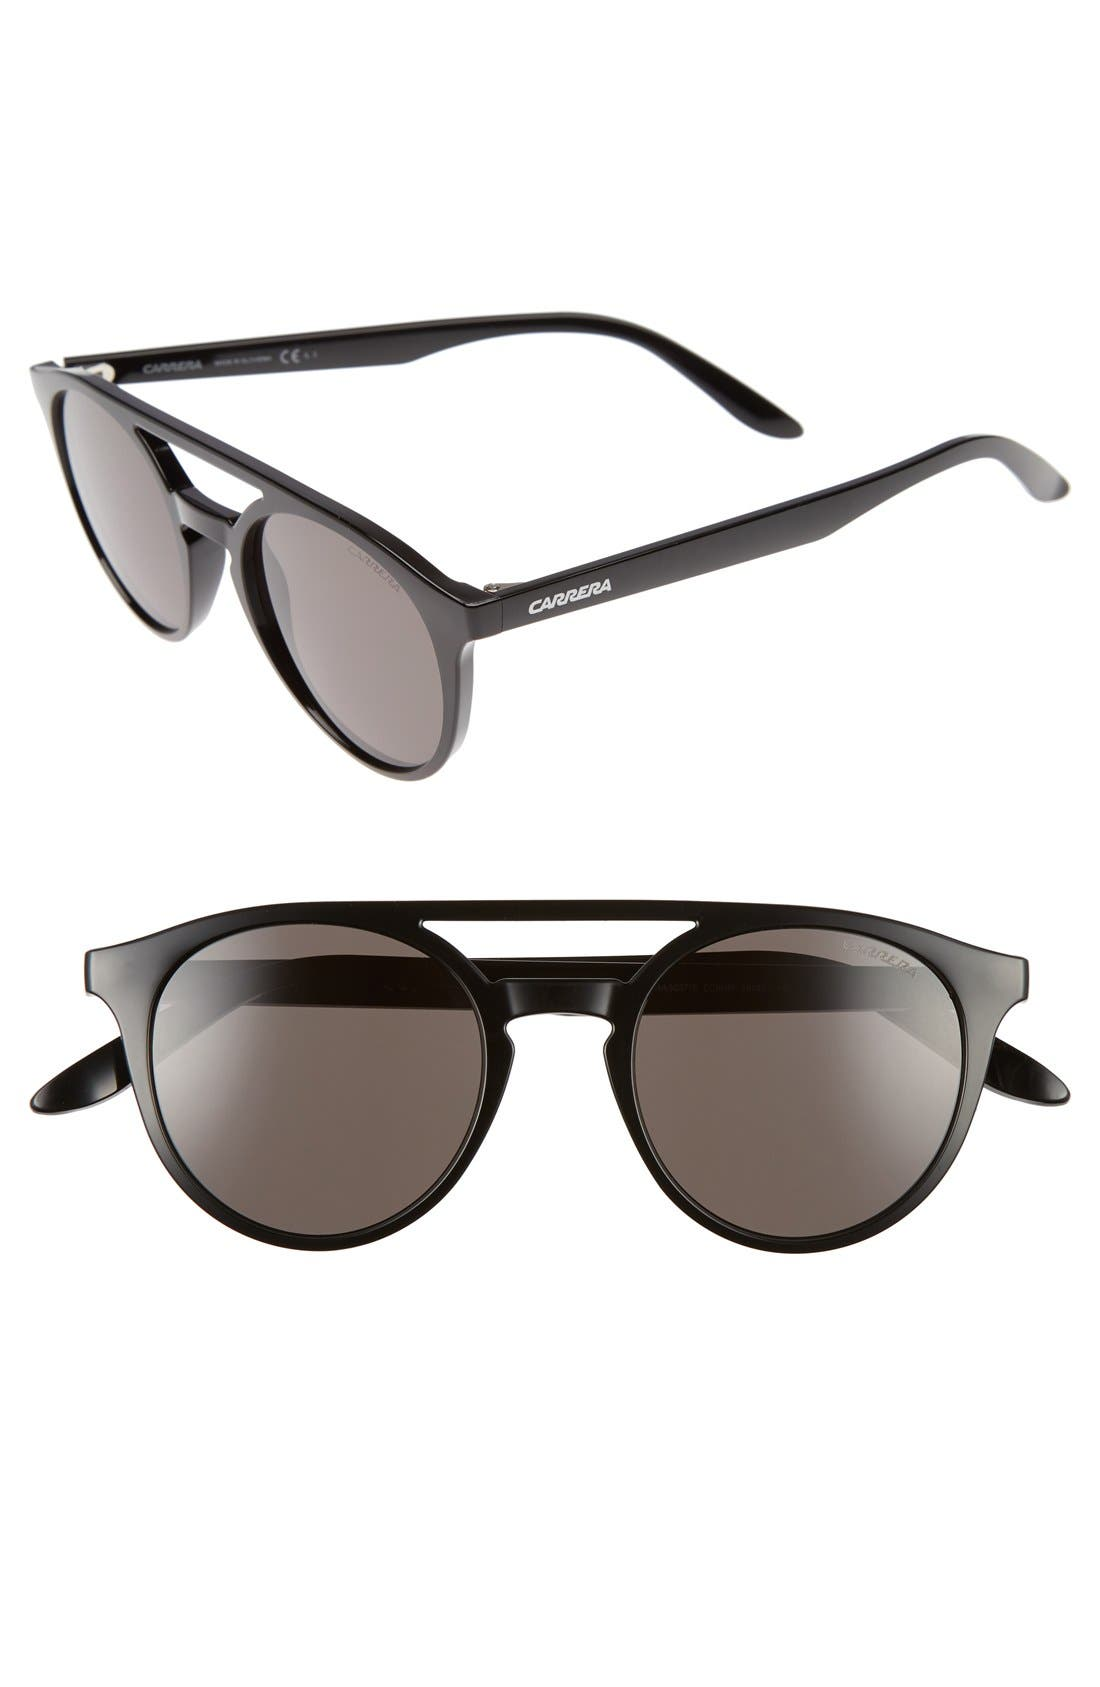 49mm Round Sunglasses,                             Main thumbnail 1, color,                             001